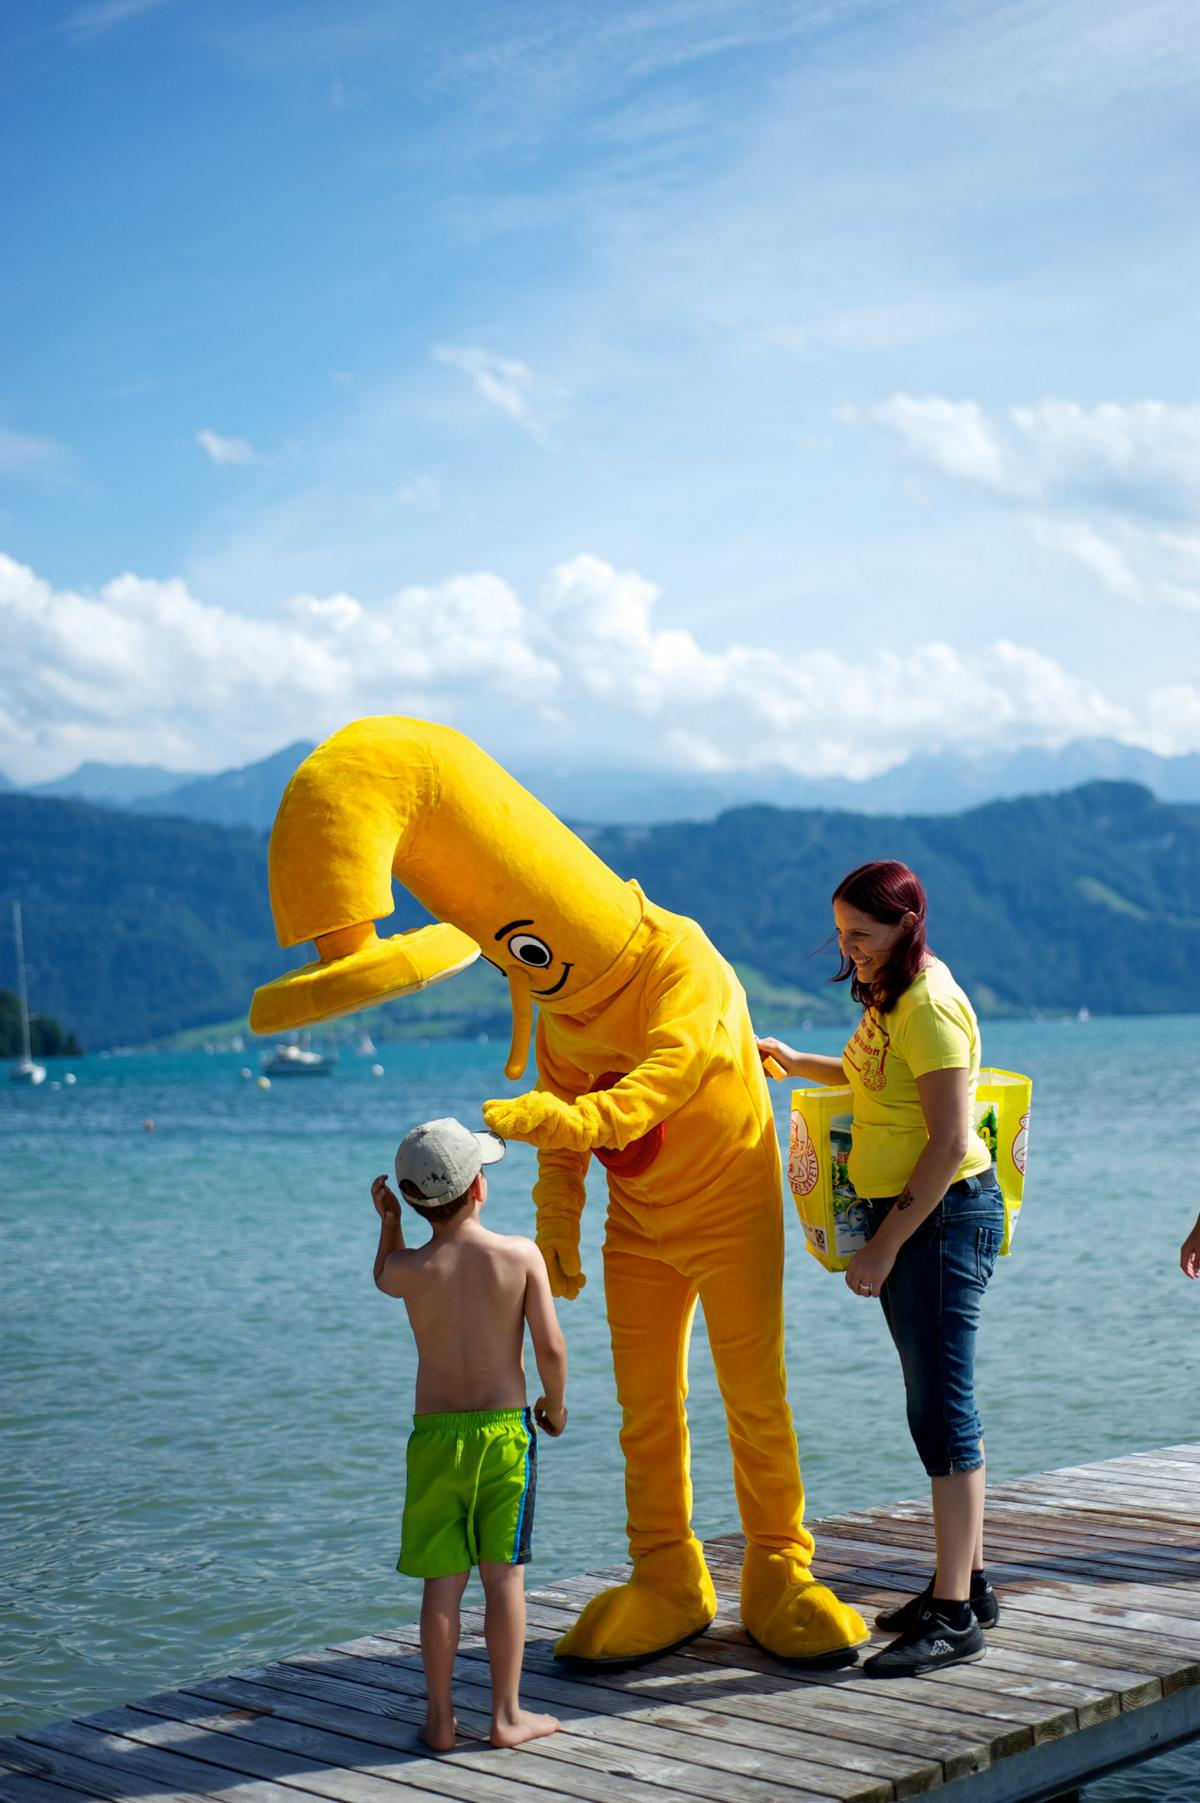 PR-Kampagne Water Safety: Didi Dusche der Kopf der Kampagne in einem Freibad. Für die dreijährige nationale Multi-Channel-Kampagne bekam die PRtools GmbH den Lead. Mit einem PR-Event, Conent Marketing, SEO, Printmedien, Webcontetn usw. gestalltet PRtools die Kampagne. Die Water-Safety-Kampagne generiert grosse Aufmerksamkeit in Fall Ertrinkungsunfälle bei Kinder.